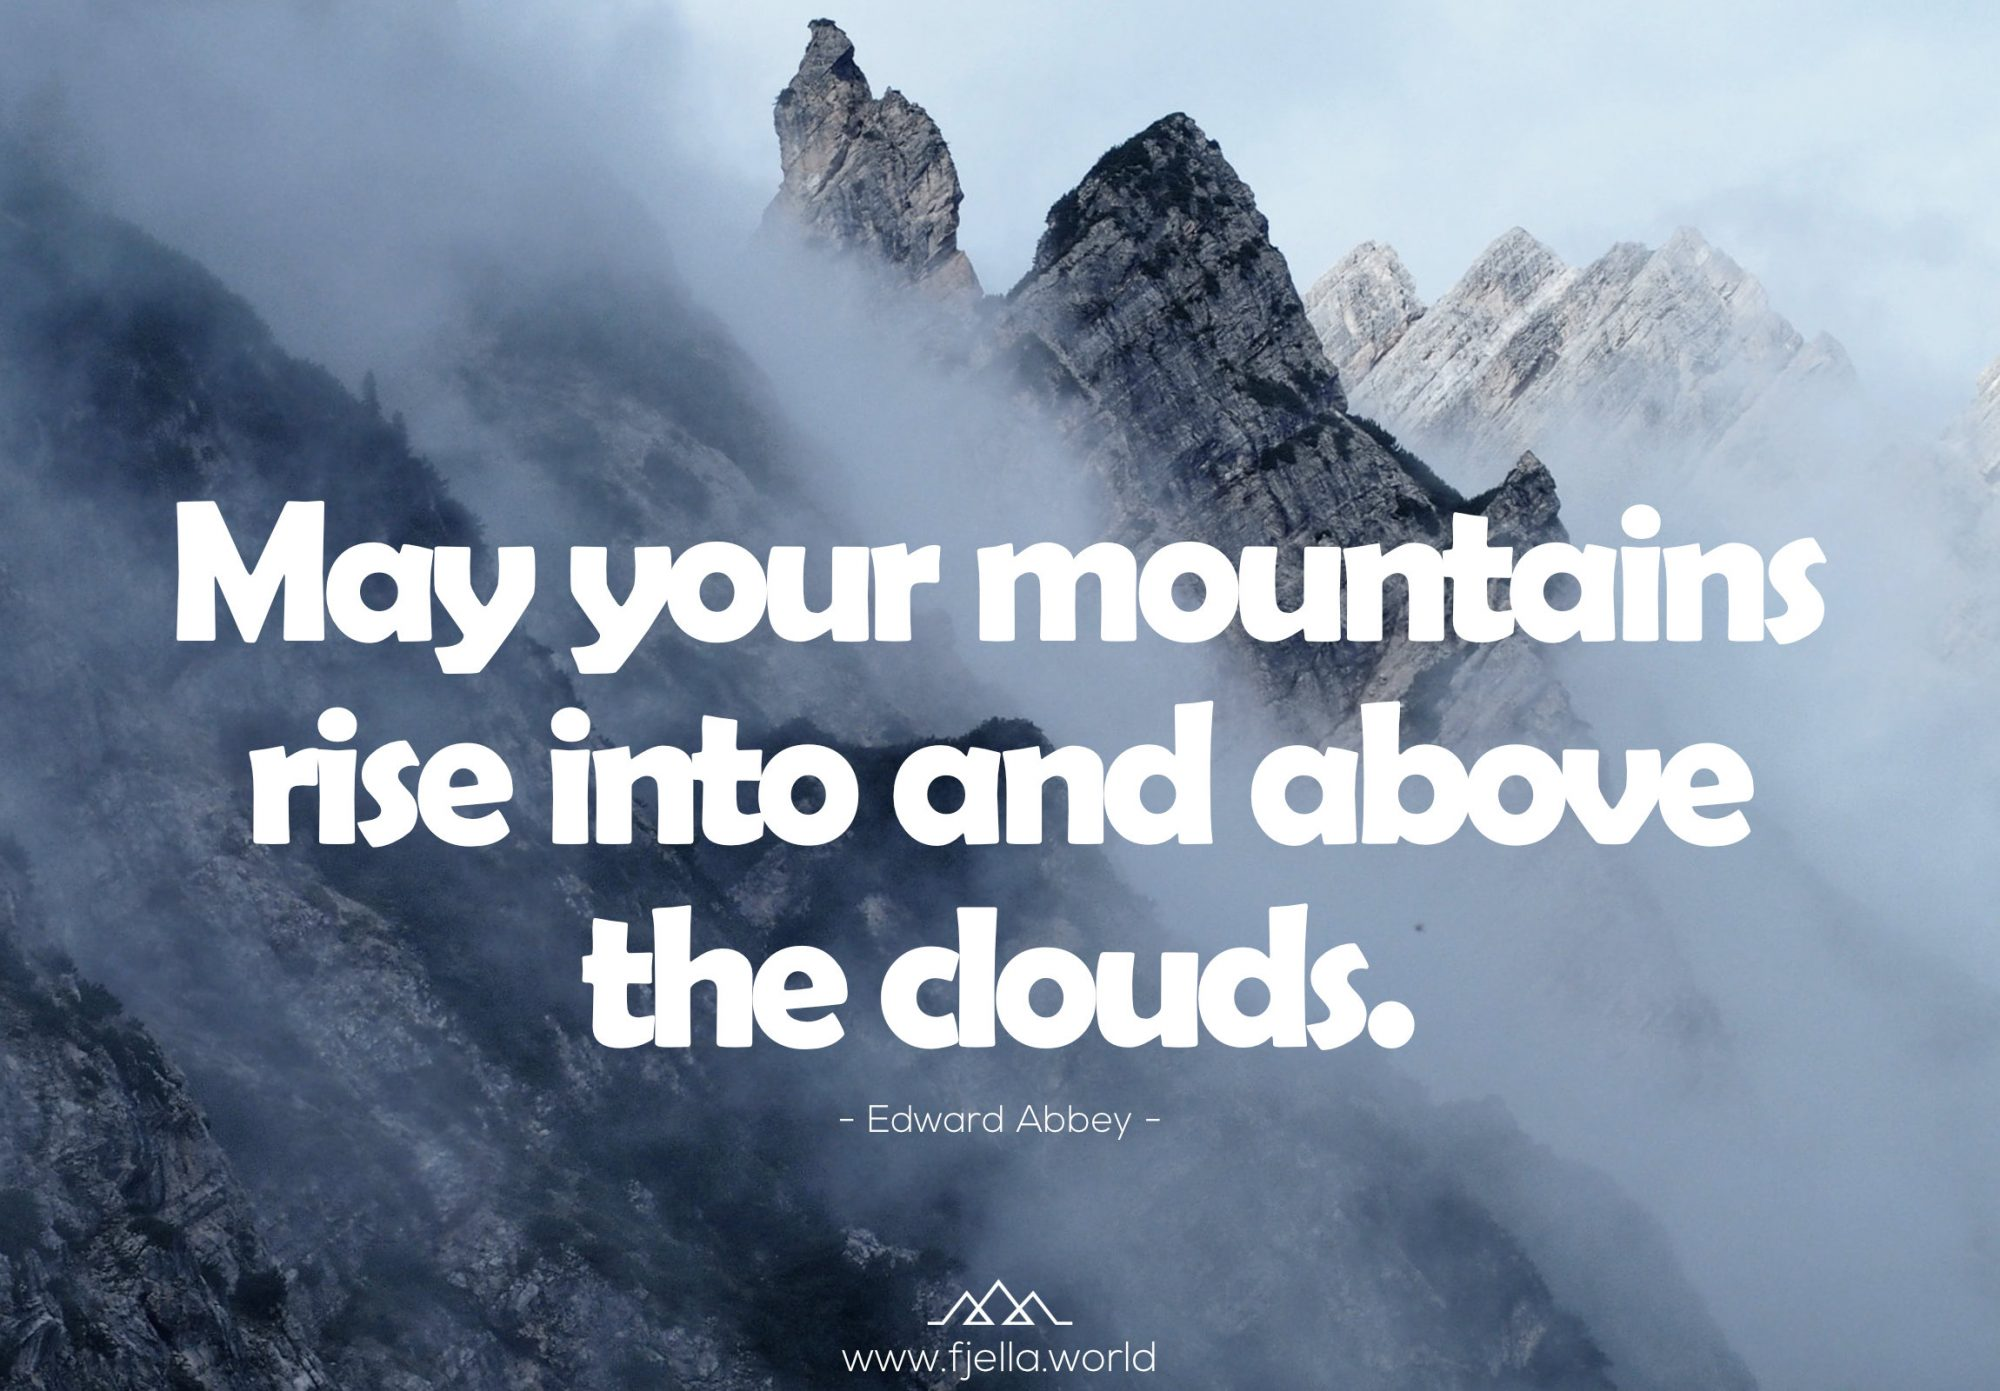 May your mountains rise into and above the clouds. Edward Abbey, Bergspruch, Wanderzitat, Inspiration, Motivation, Zitat, Spruch, Reisezitate, Motivation